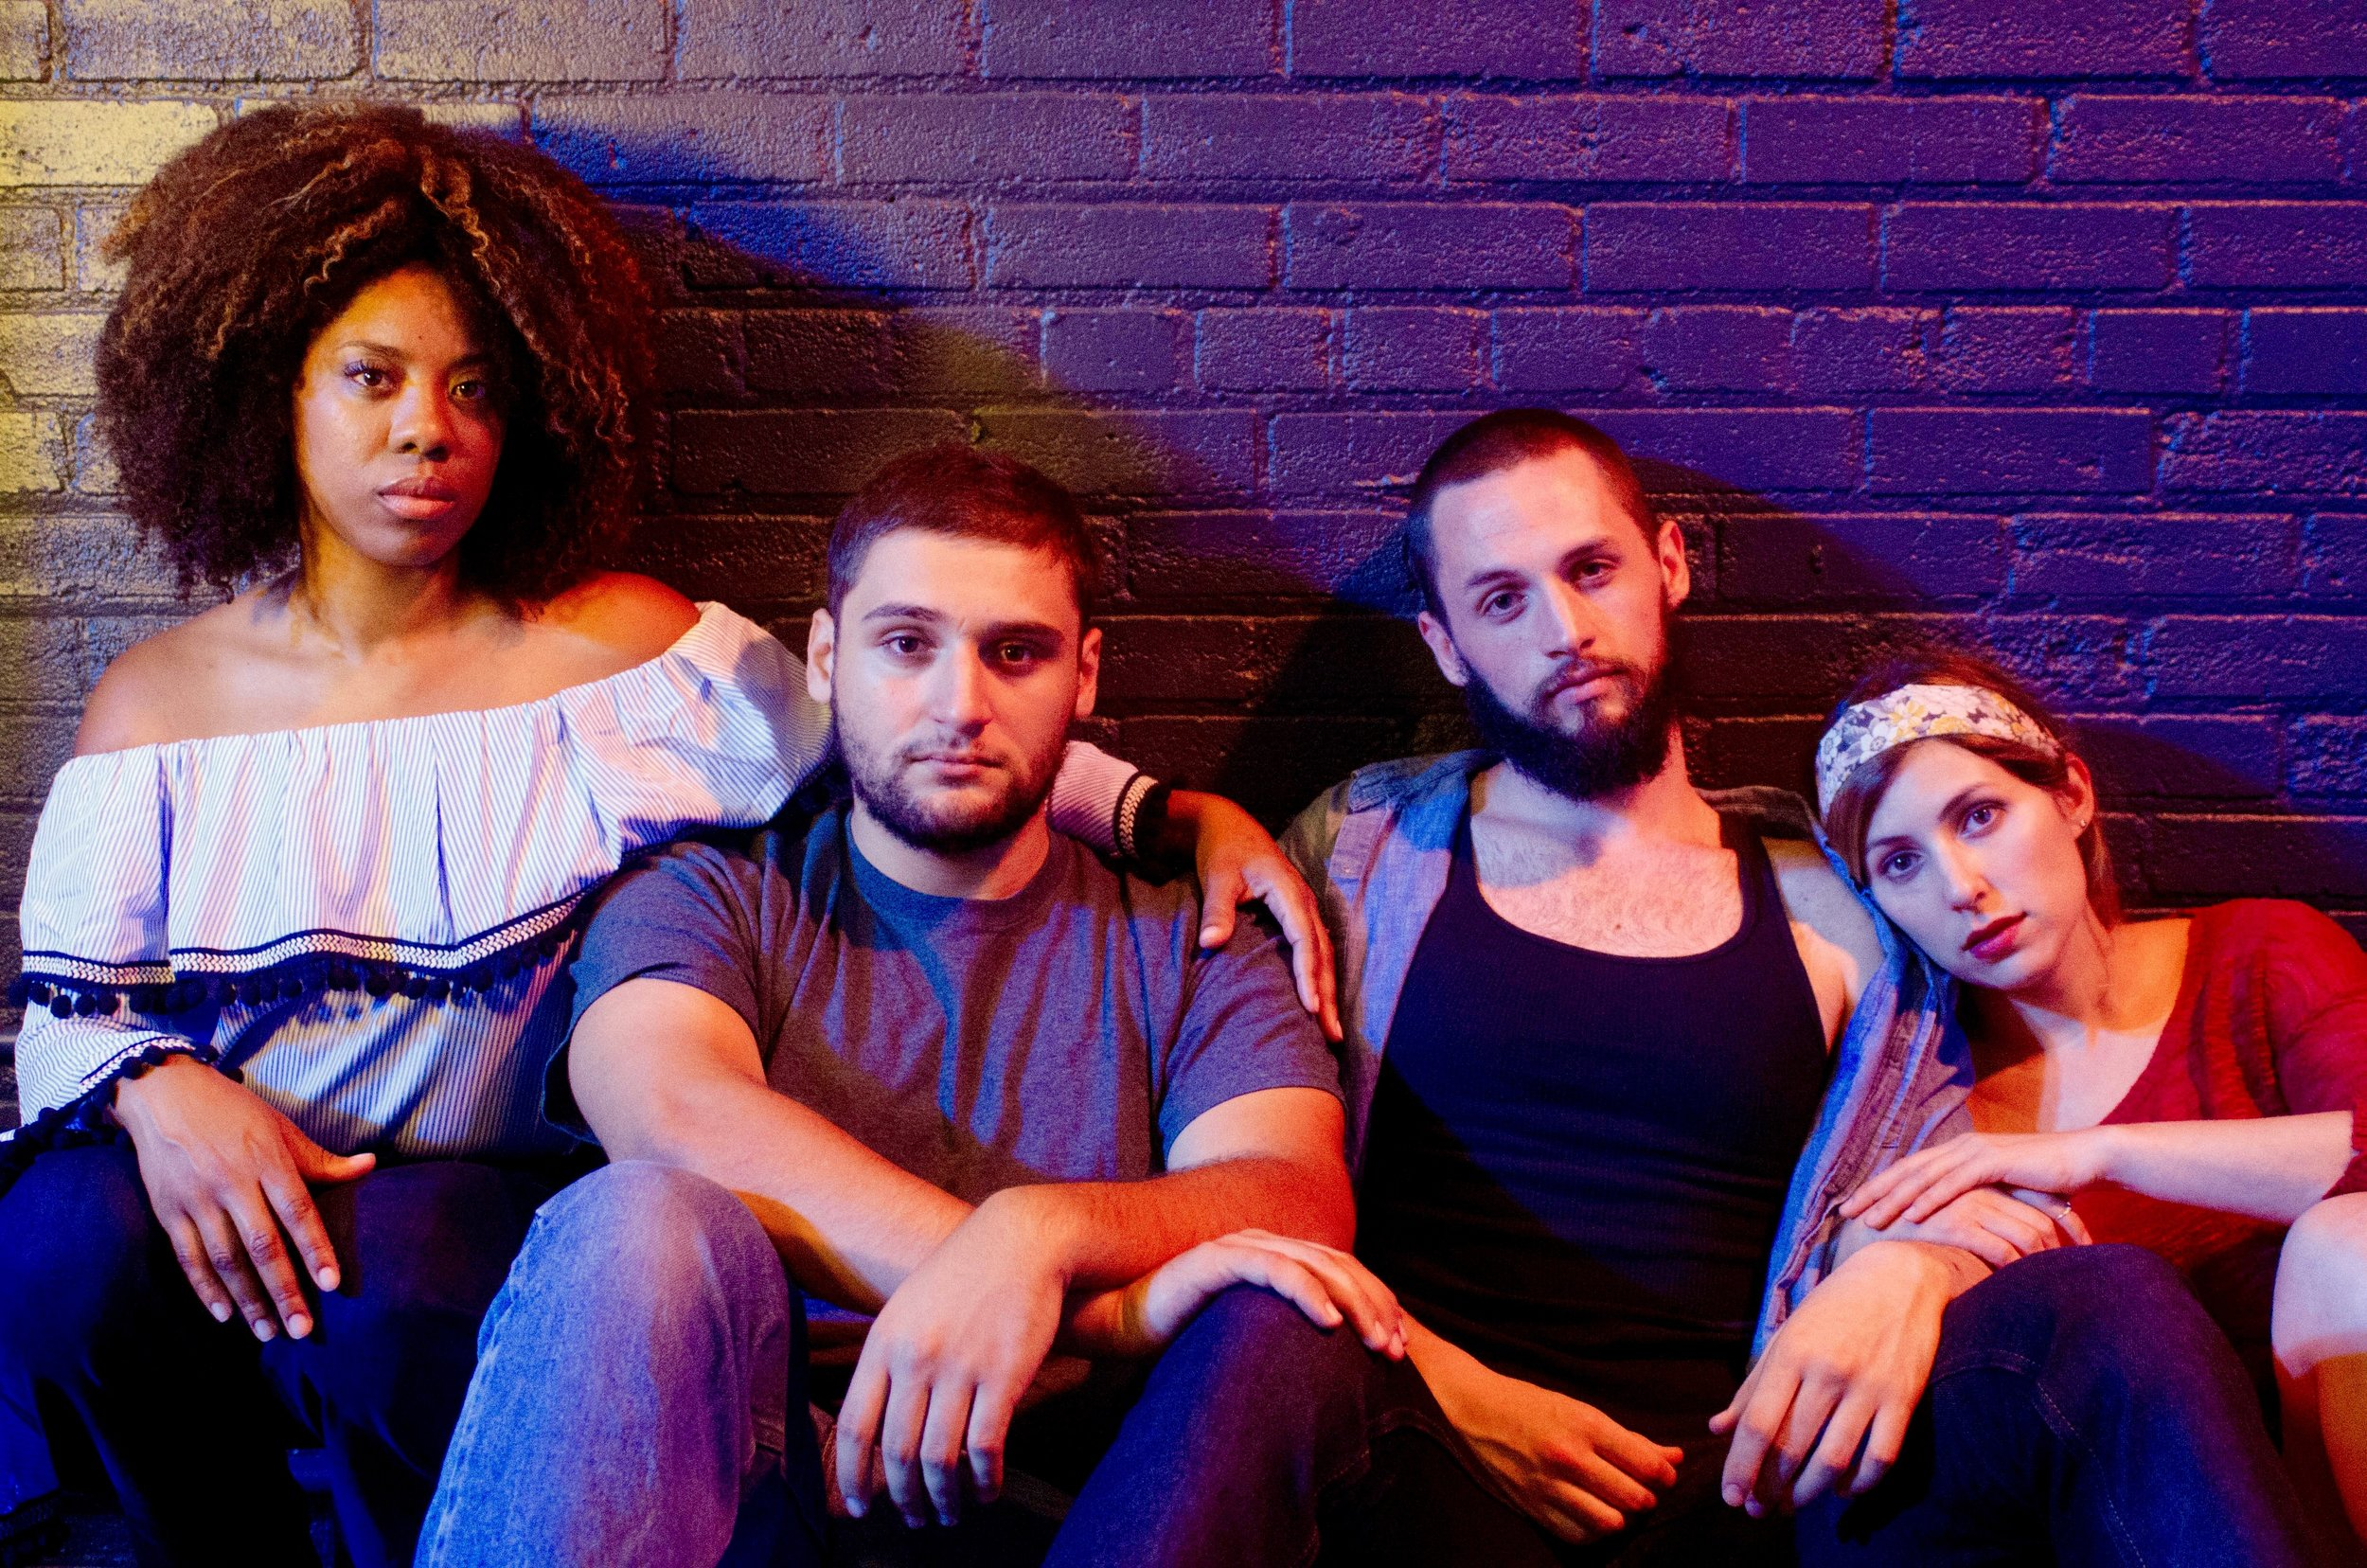 Featuring (from left to right) Candice d'Meza, Gabriel Regojo, Jeremy Gee & Stephanie Wittels Wachs Photo by Tasha Gorel